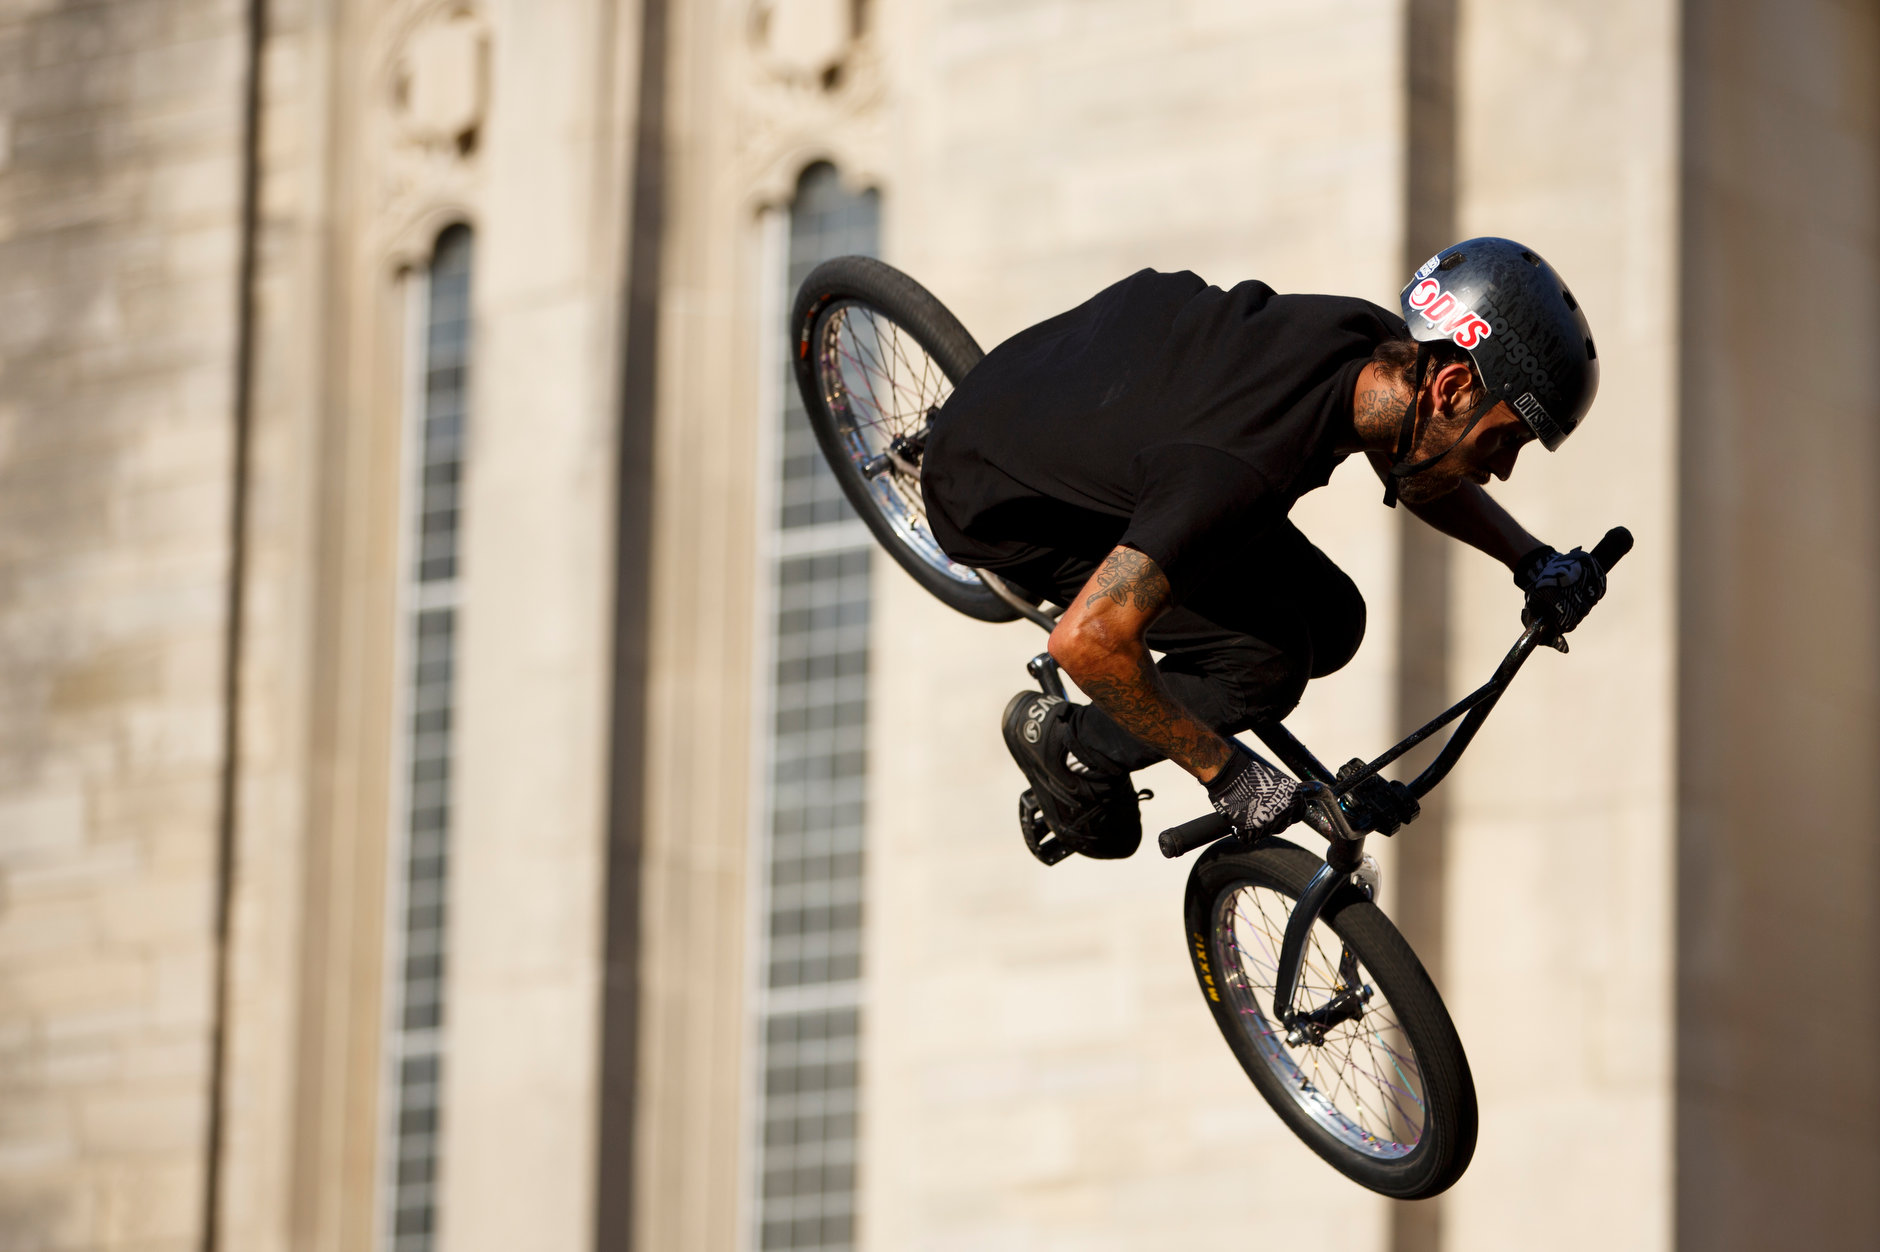 Dallas Weimer performs with the Division BMX Stunt Team performs during Bikes and Burgers at IU Bloomington on Monday, Aug. 19, 2019. (James Brosher/Indiana University)